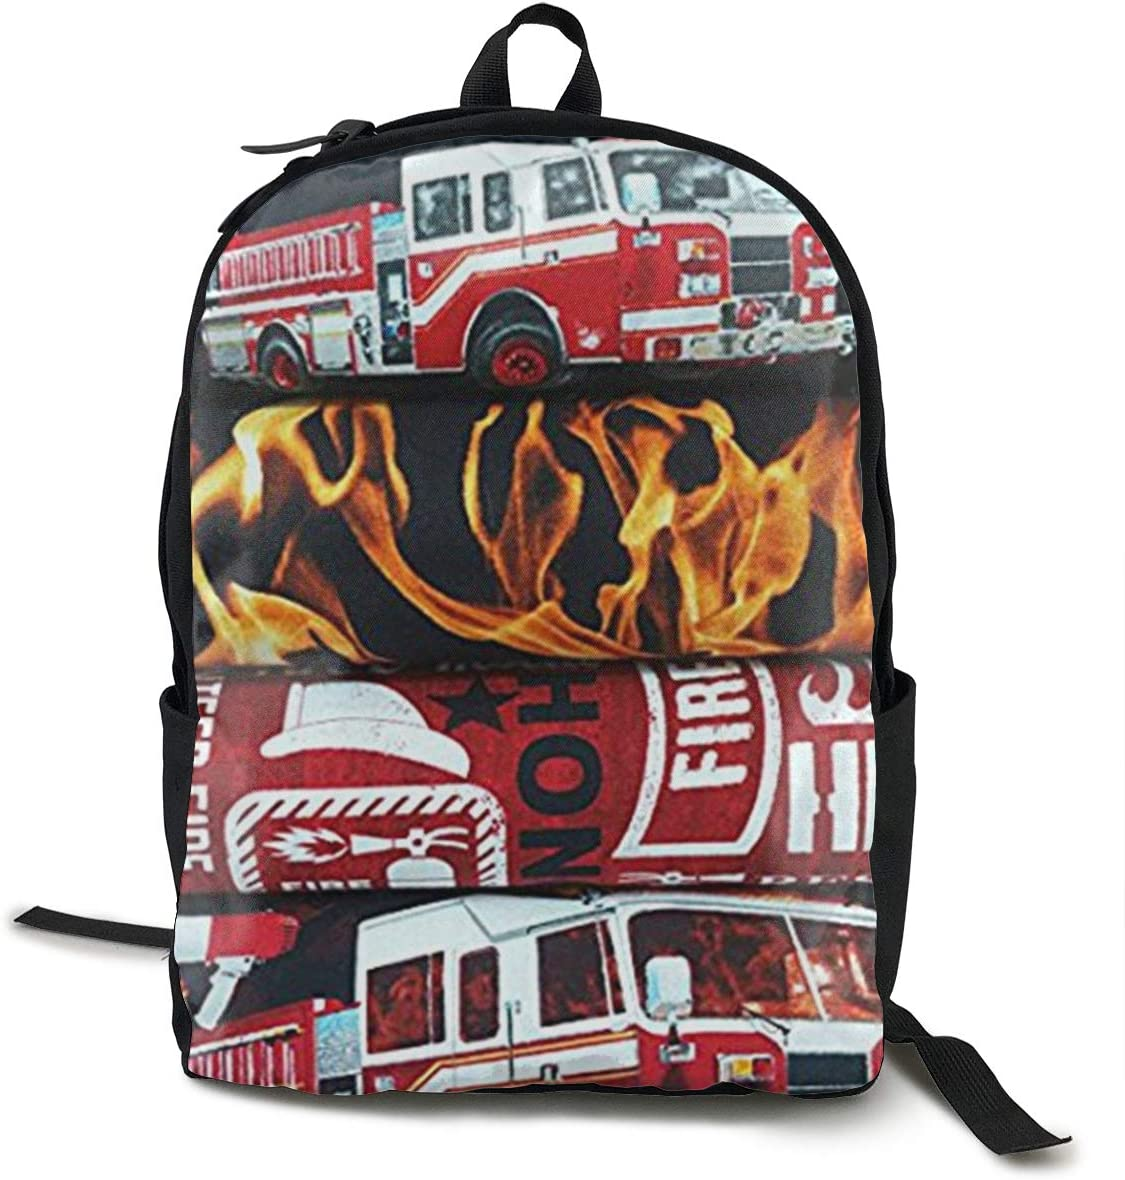 NiYoung Men Women Laptop Backpack Business Travel Anti Theft Daypack Durable College School Bookbag Computer Backpack, Fire Fighter Truck